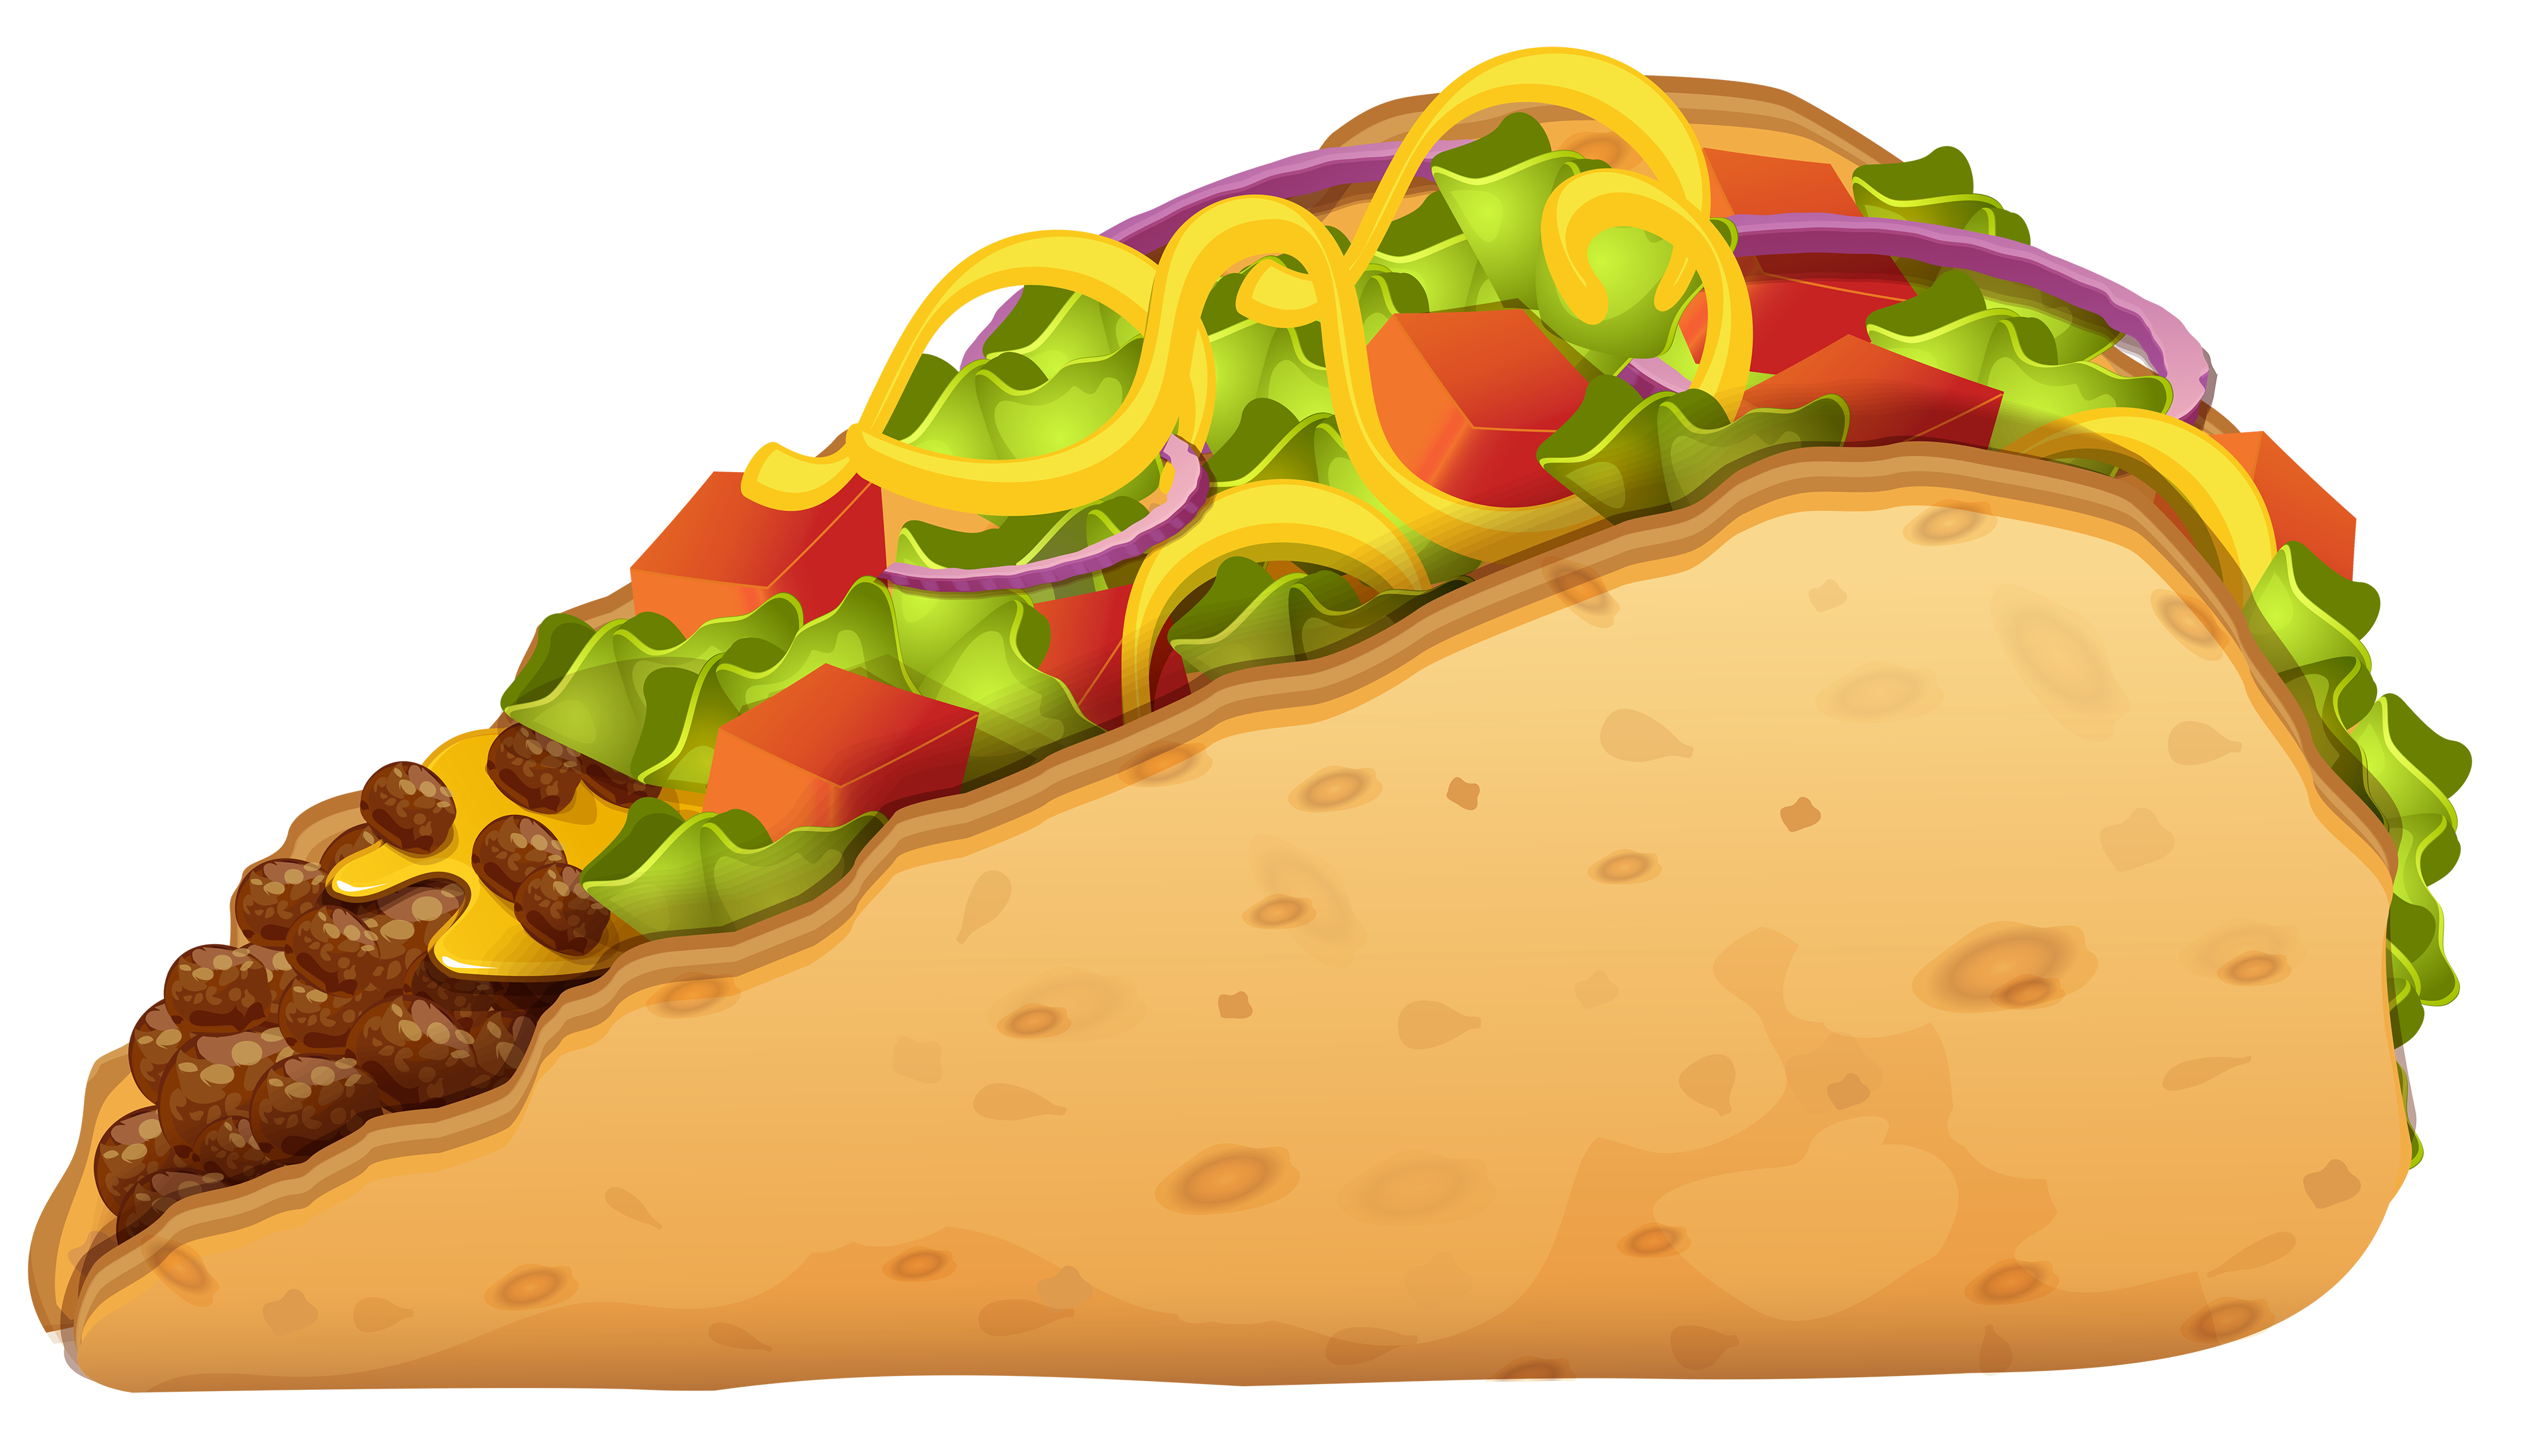 Sandwich clipart png. With onion and lettuce